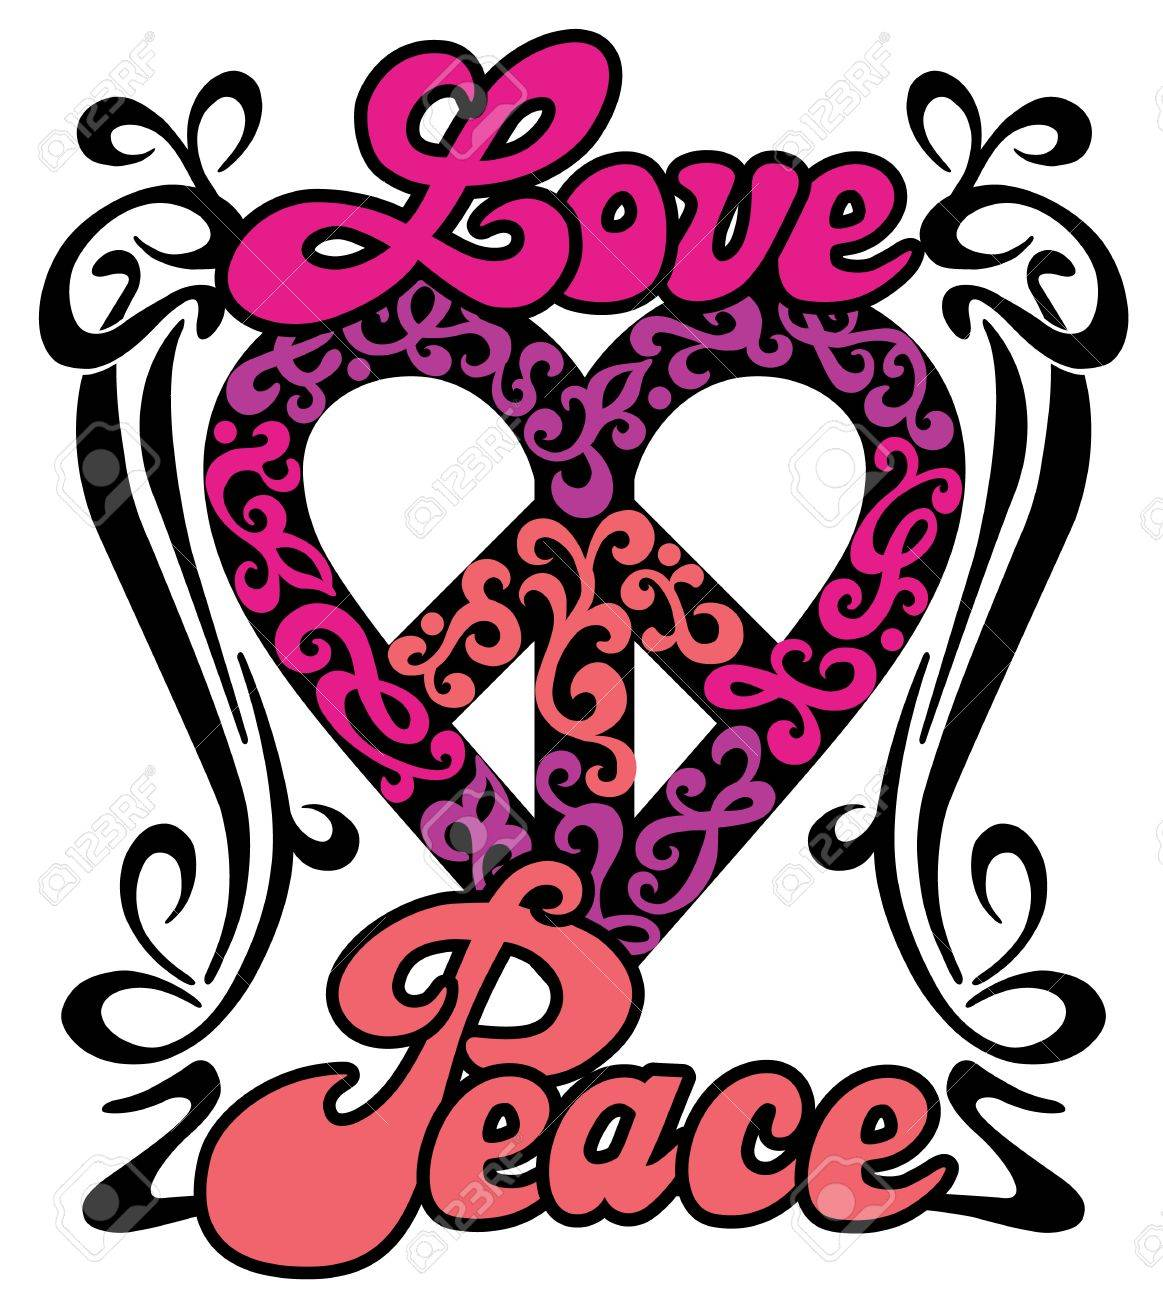 Love peace heart retro design of a love peace symbol with the love peace heart retro design of a love peace symbol with the words love biocorpaavc